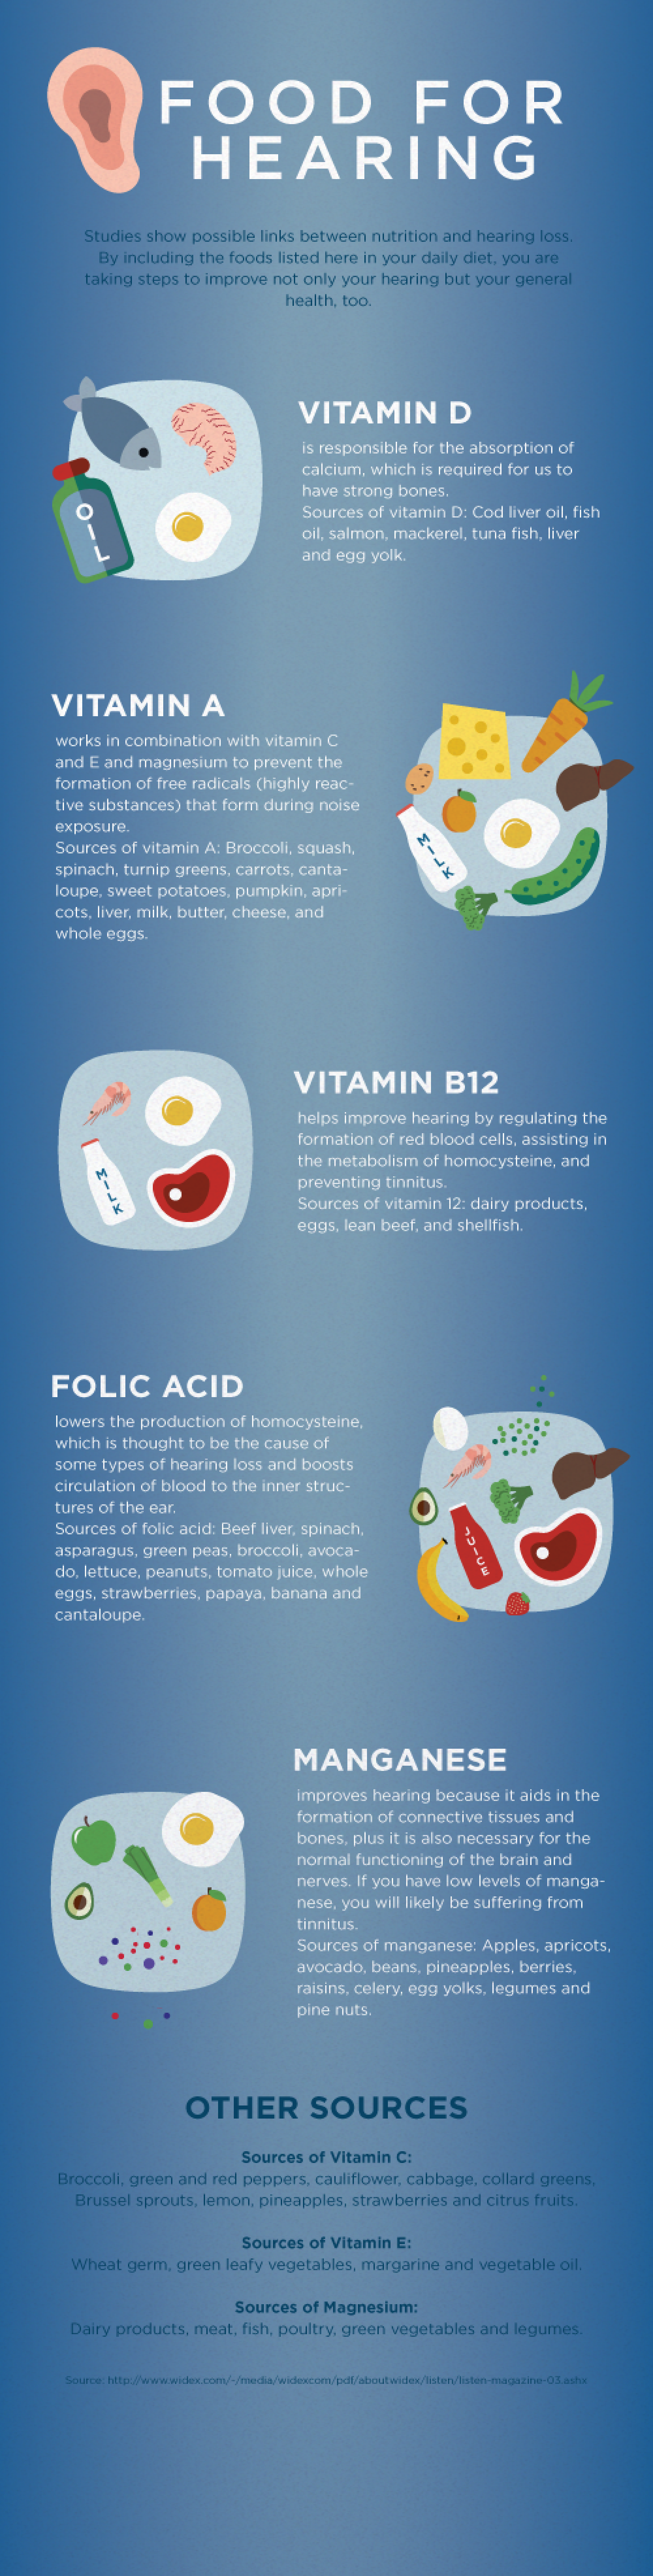 Food for Hearing Infographic